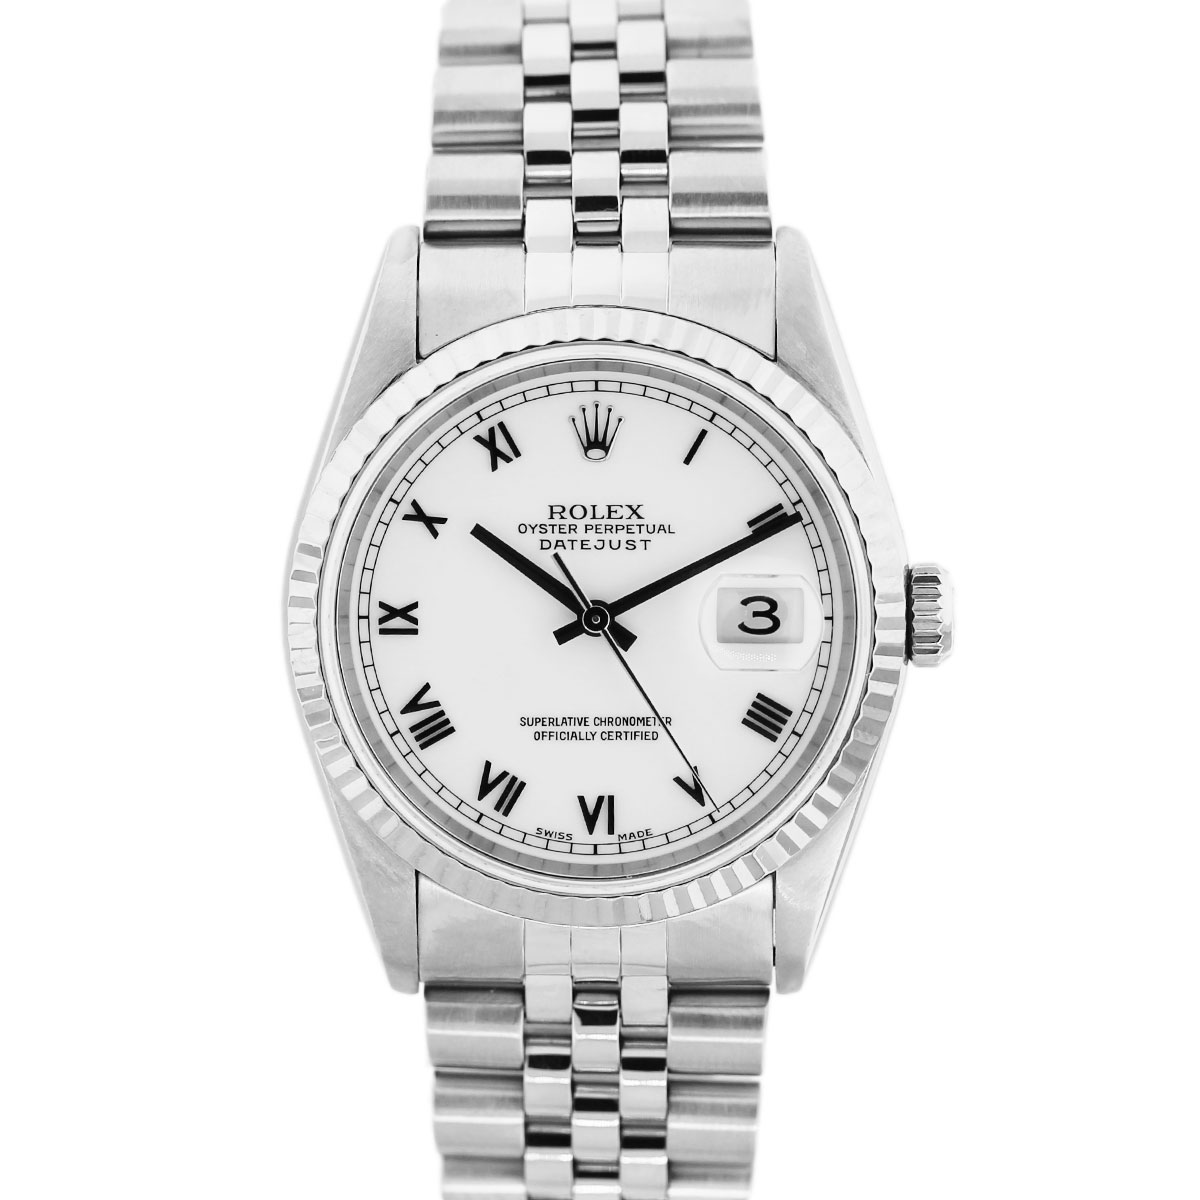 rolex oyster perpetual datejust 16234 stainless steel watch. Black Bedroom Furniture Sets. Home Design Ideas